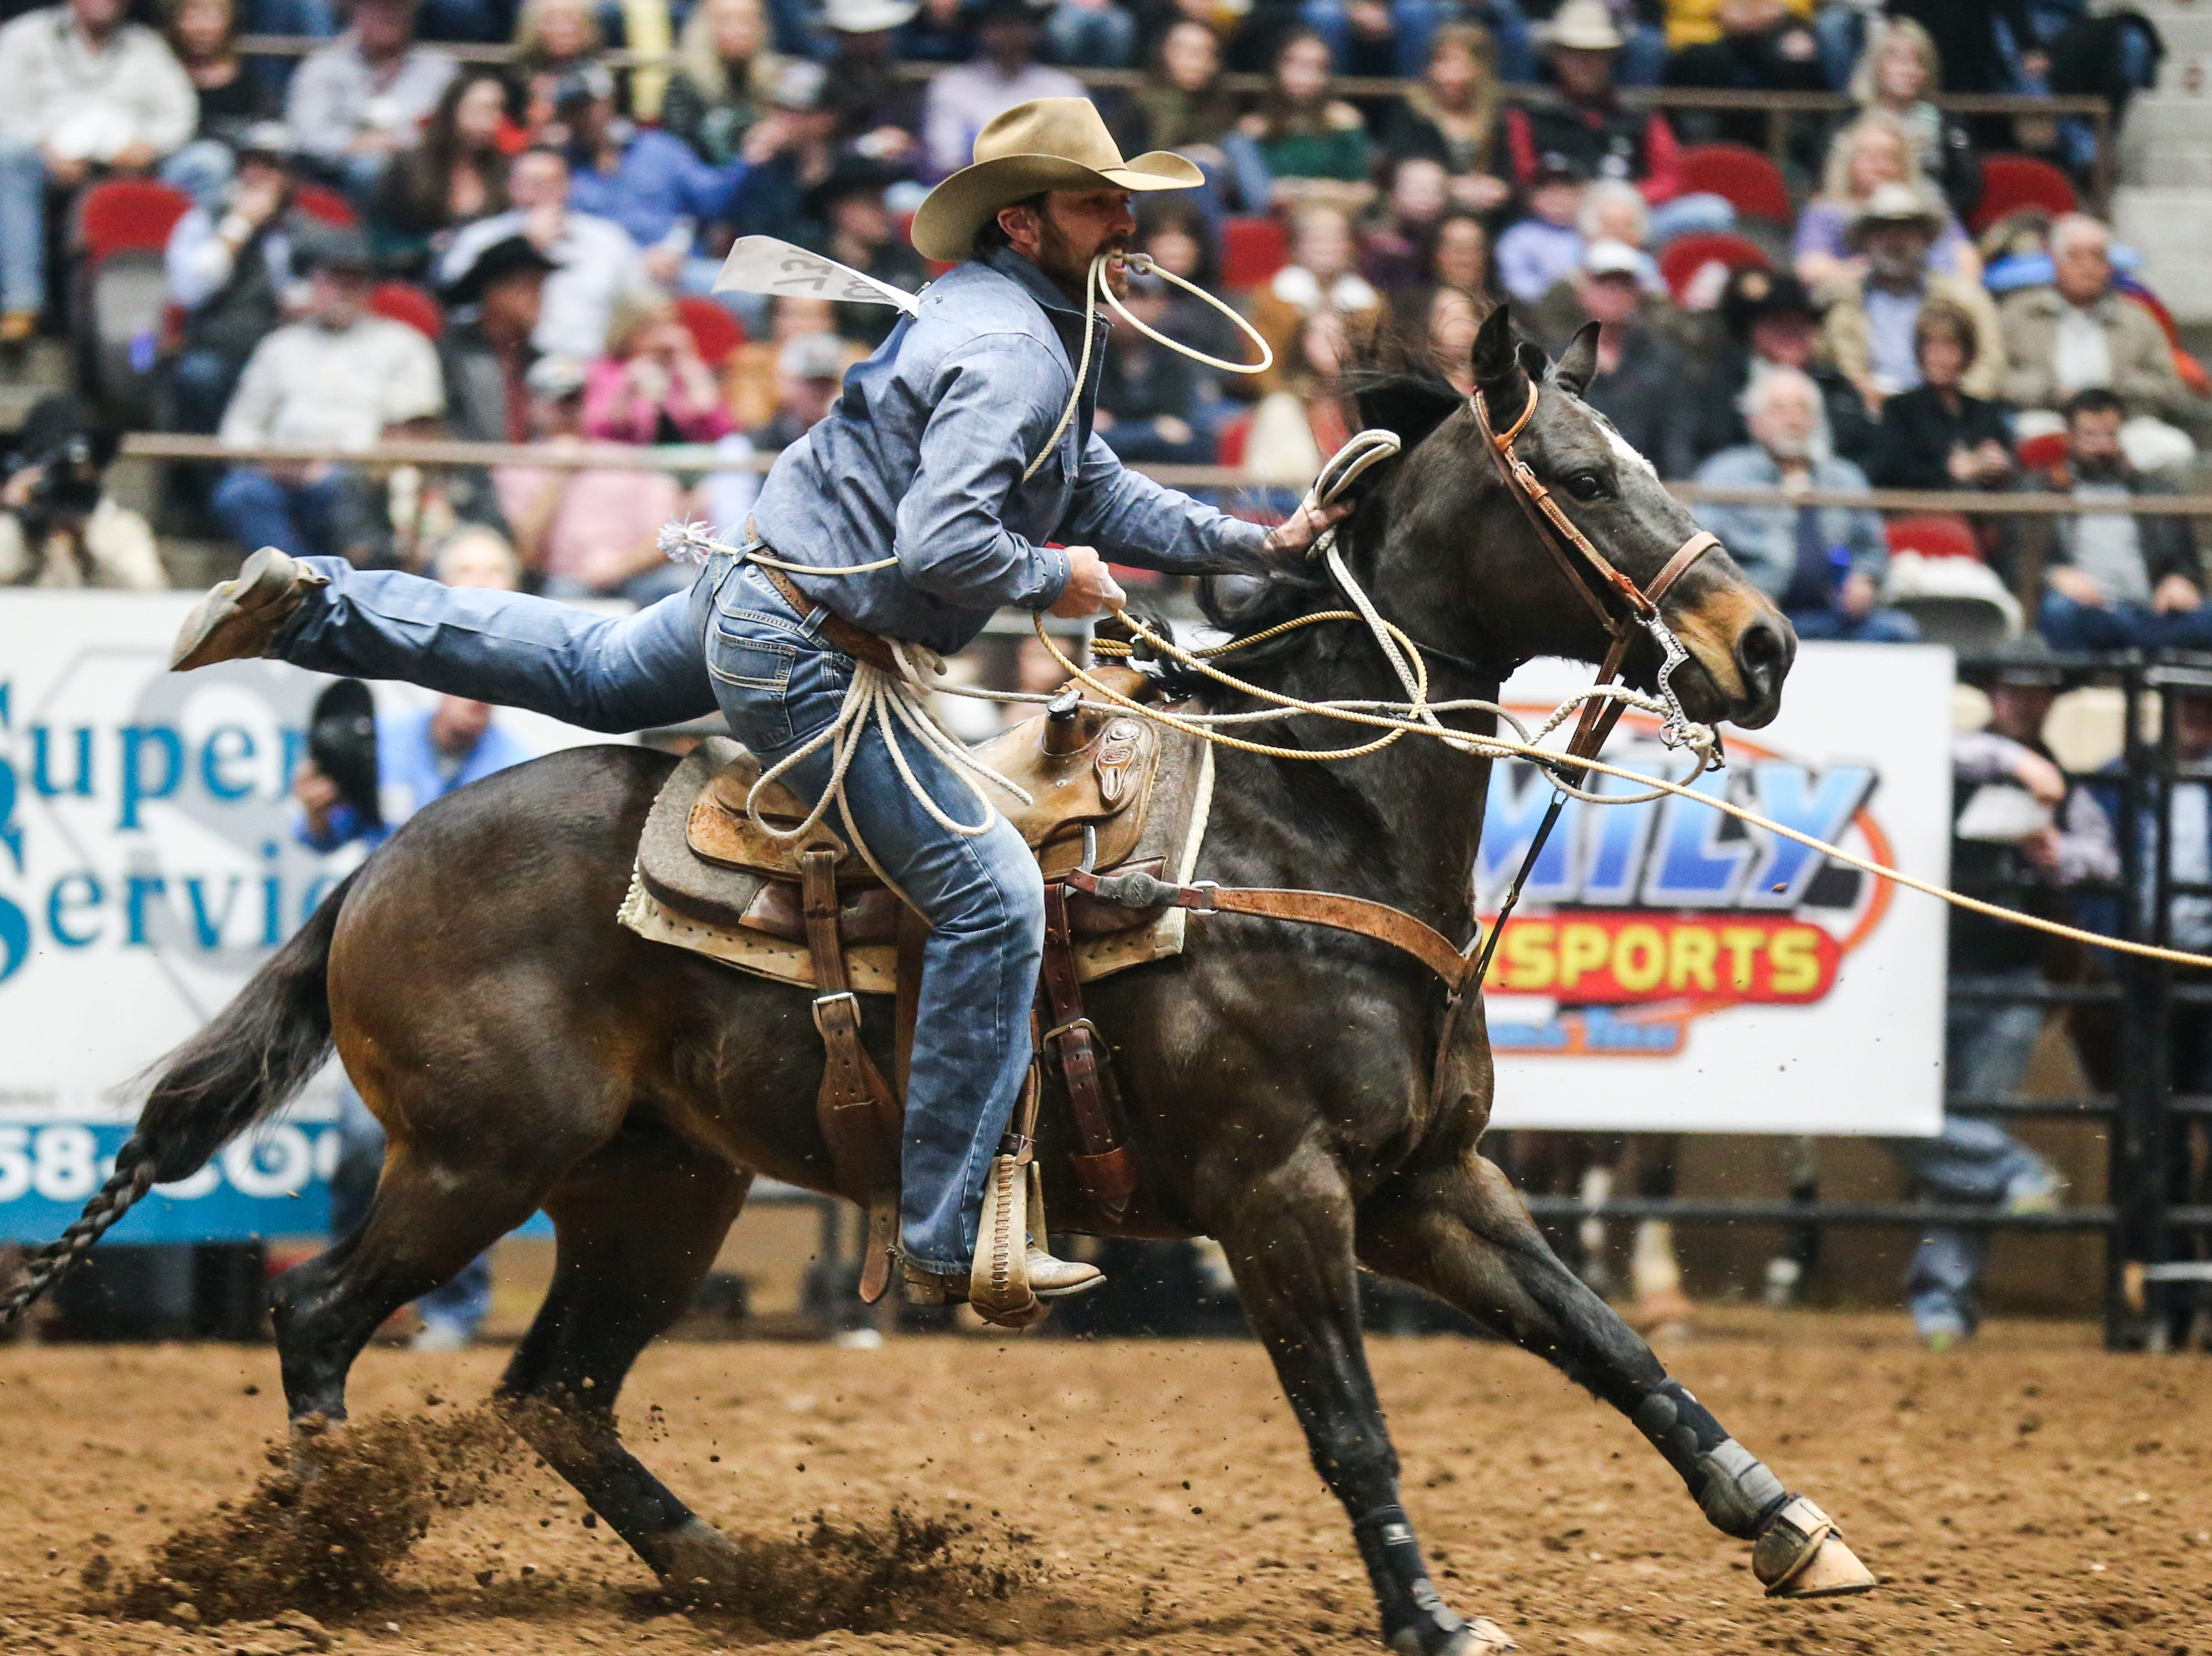 Cade Swor gets off his horse to tie down a calf during the 3rd performance of the San Angelo Stock Show & Rodeo Saturday, Feb. 2, 2019, at Foster Communications Coliseum.